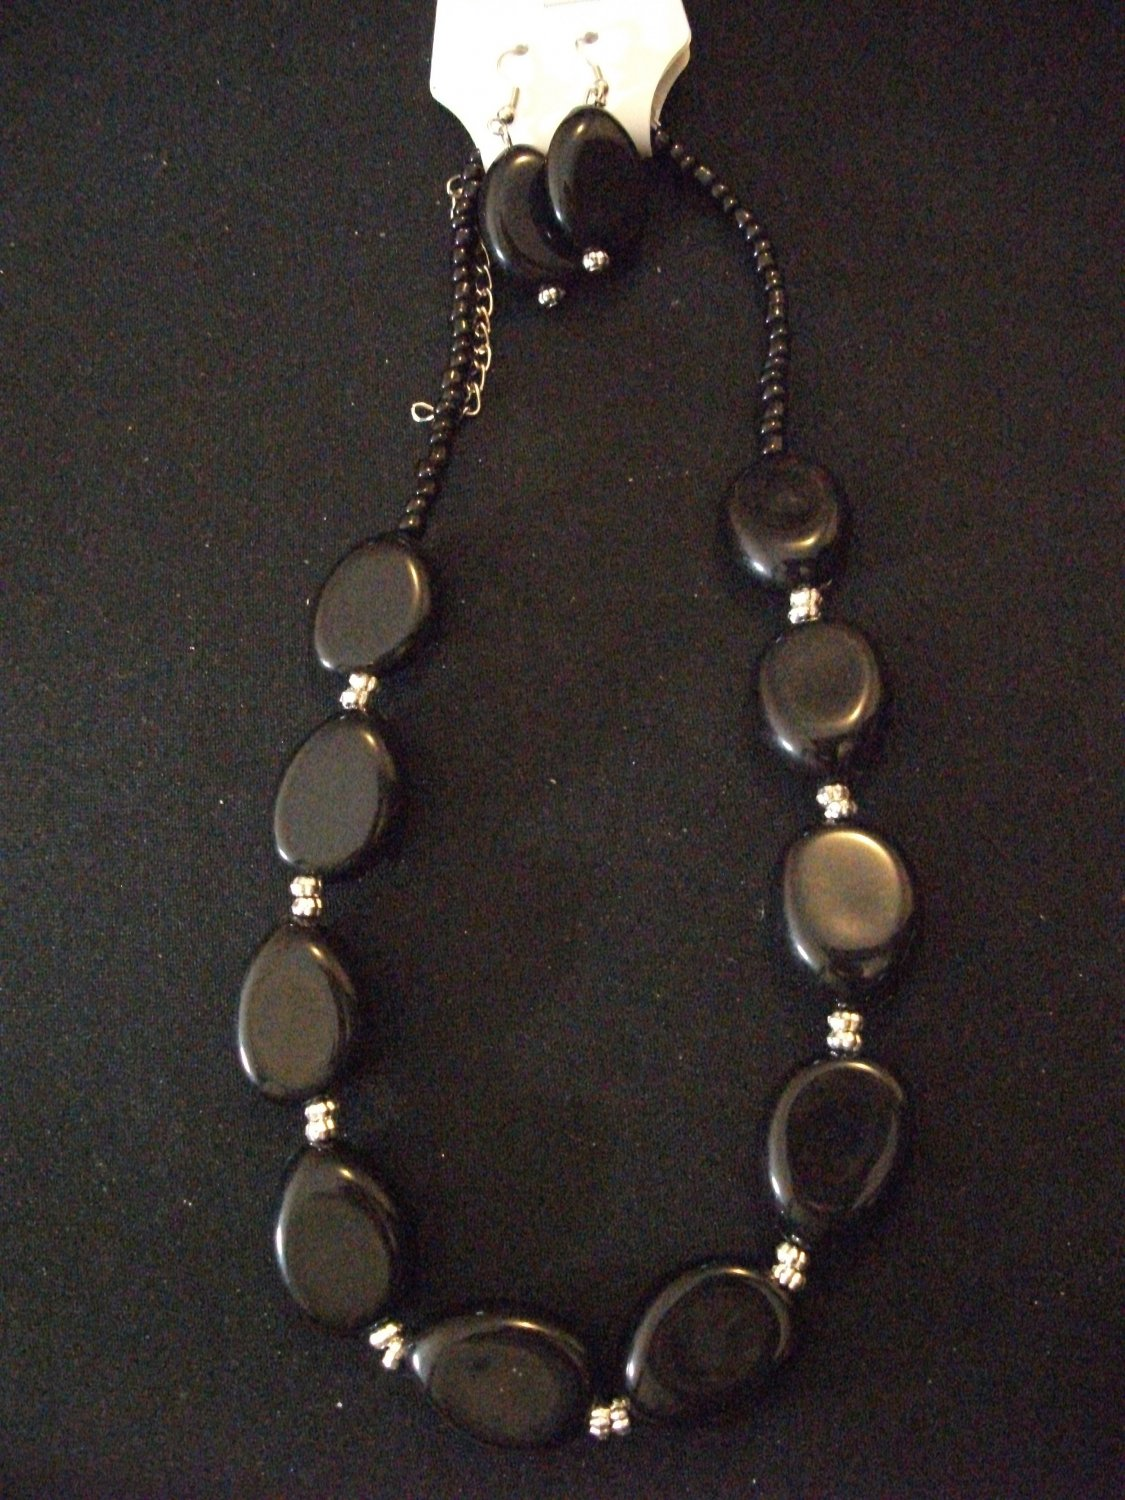 Black and Silver Beaded Necklace with Earrings